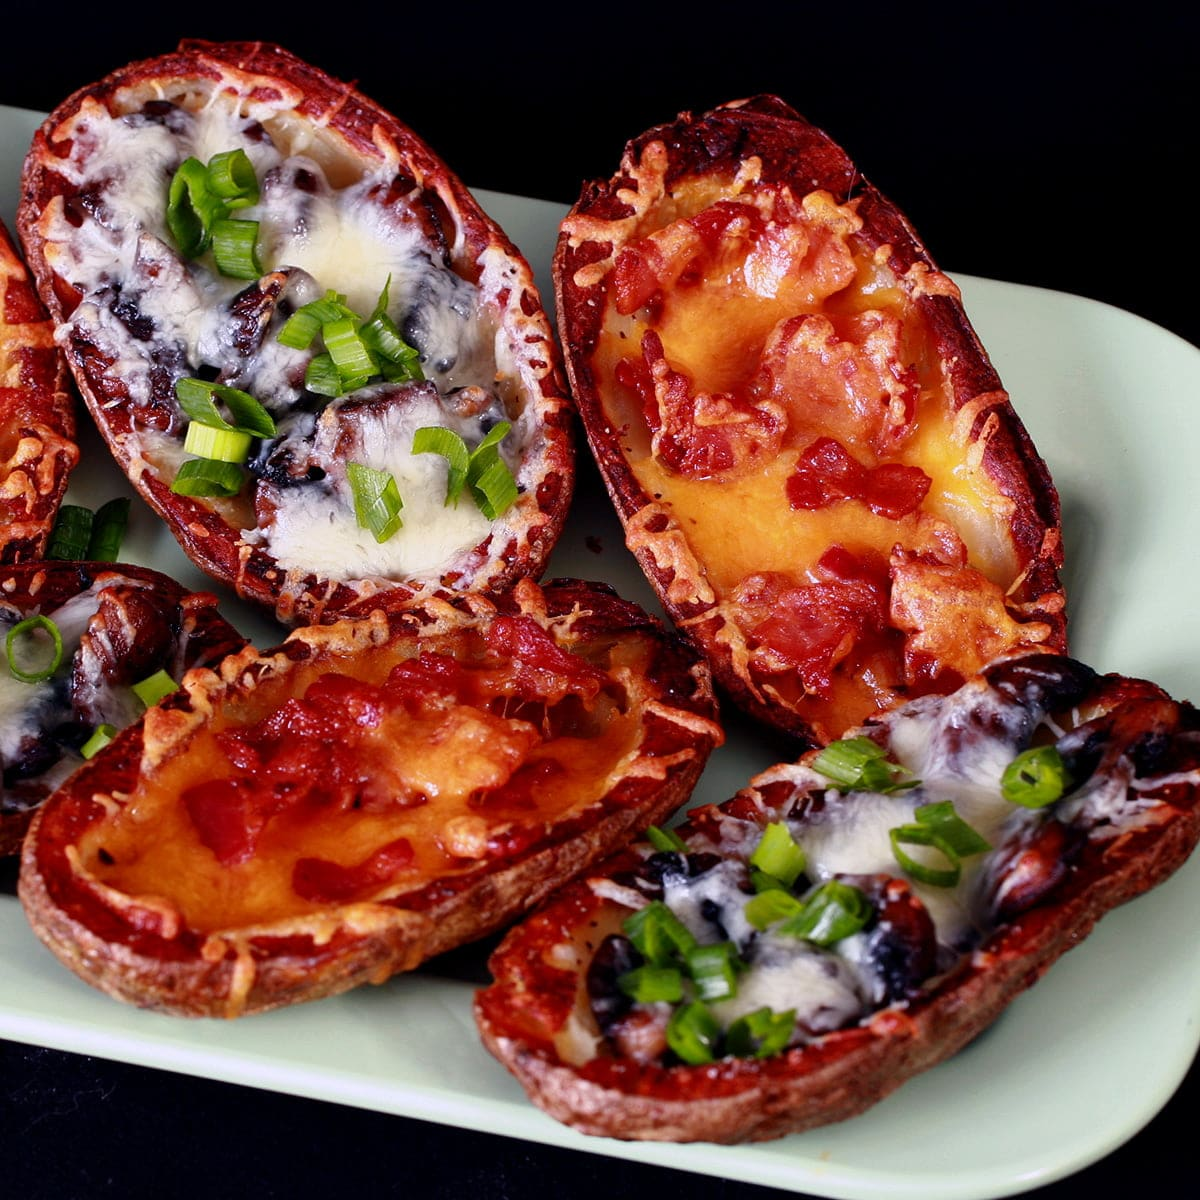 A pale green plate displays 8 baked potato skins. Half are filled with mushrooms and swiss cheese, the other half have bacon and cheddar as the filling, some topped with sour cream. Most potato skins are sprinkled with sliced green onion.